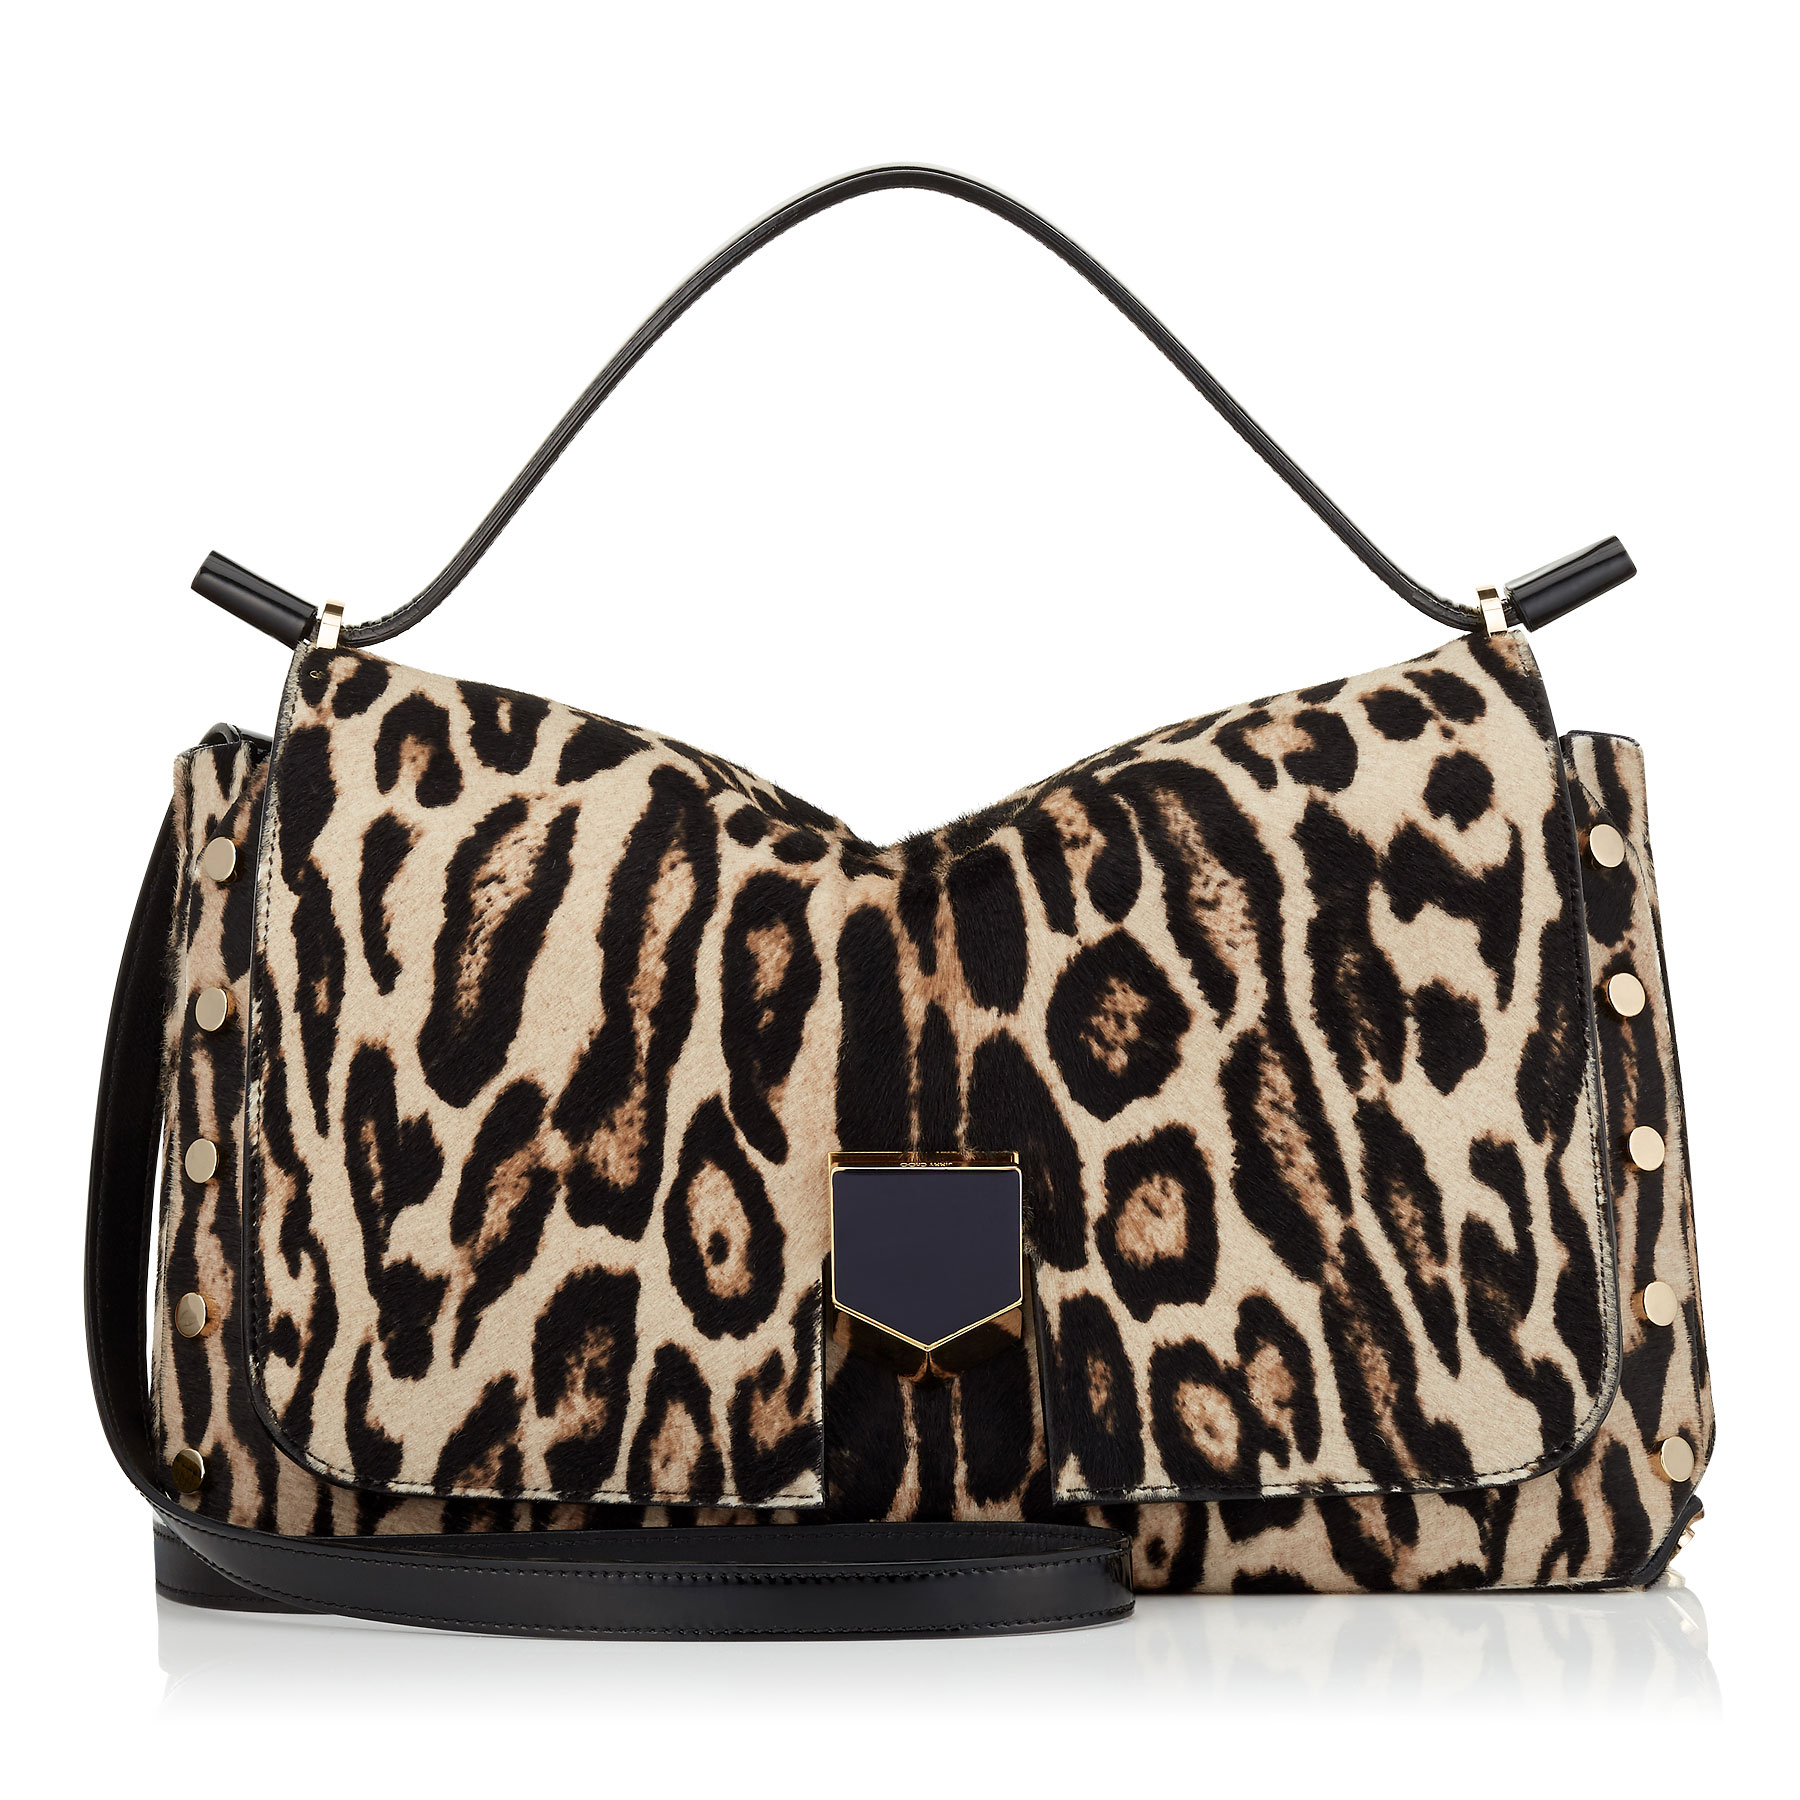 LOCKETT/M Snow Leopard Print Pony Handbag